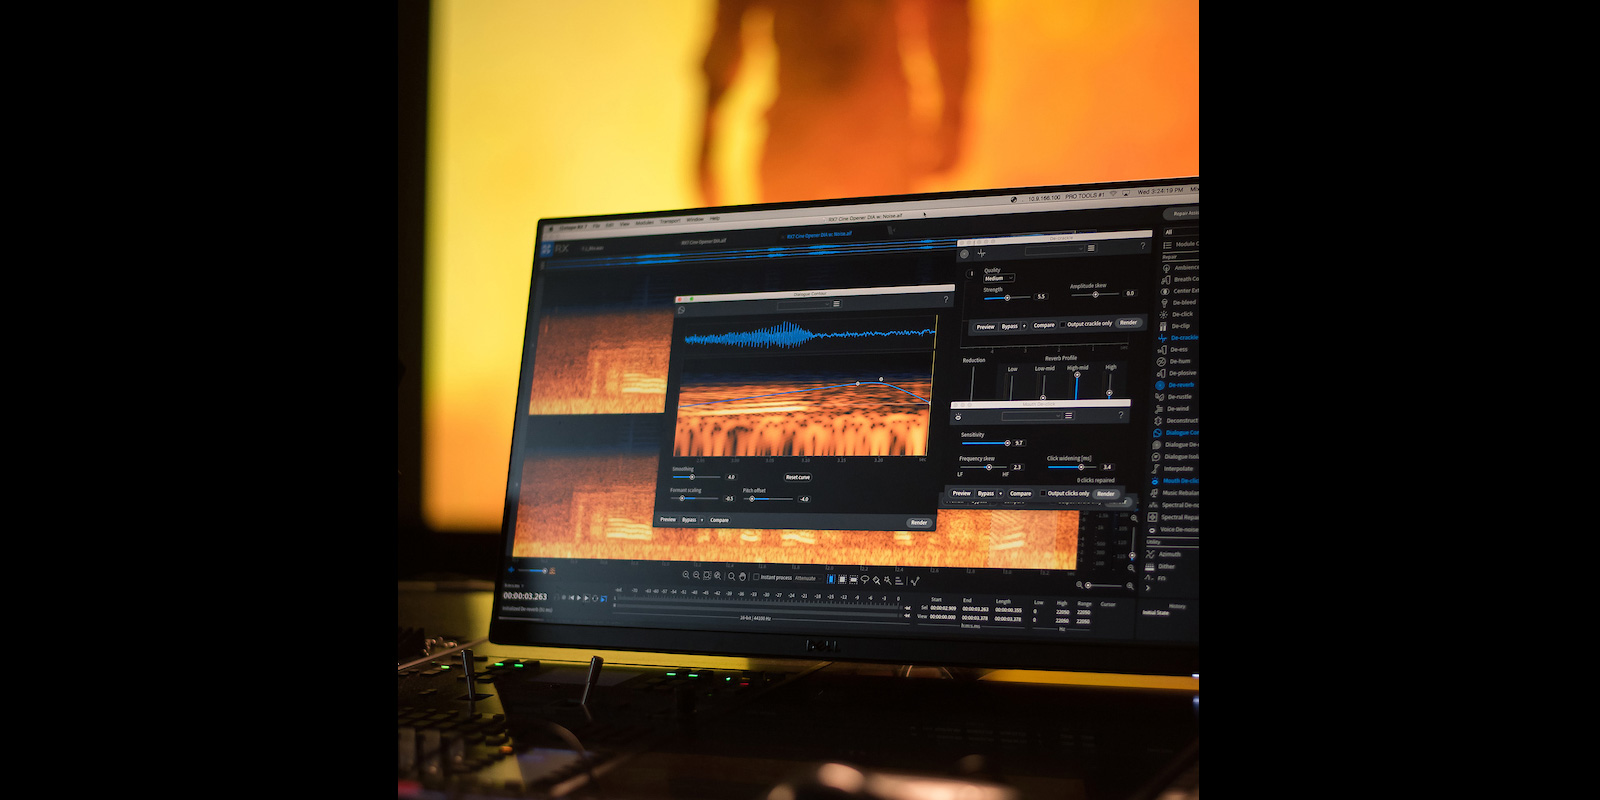 iZotope to Be Honored With Academy of Motion Picture Arts and Sciences' Scientific and Engineering Award